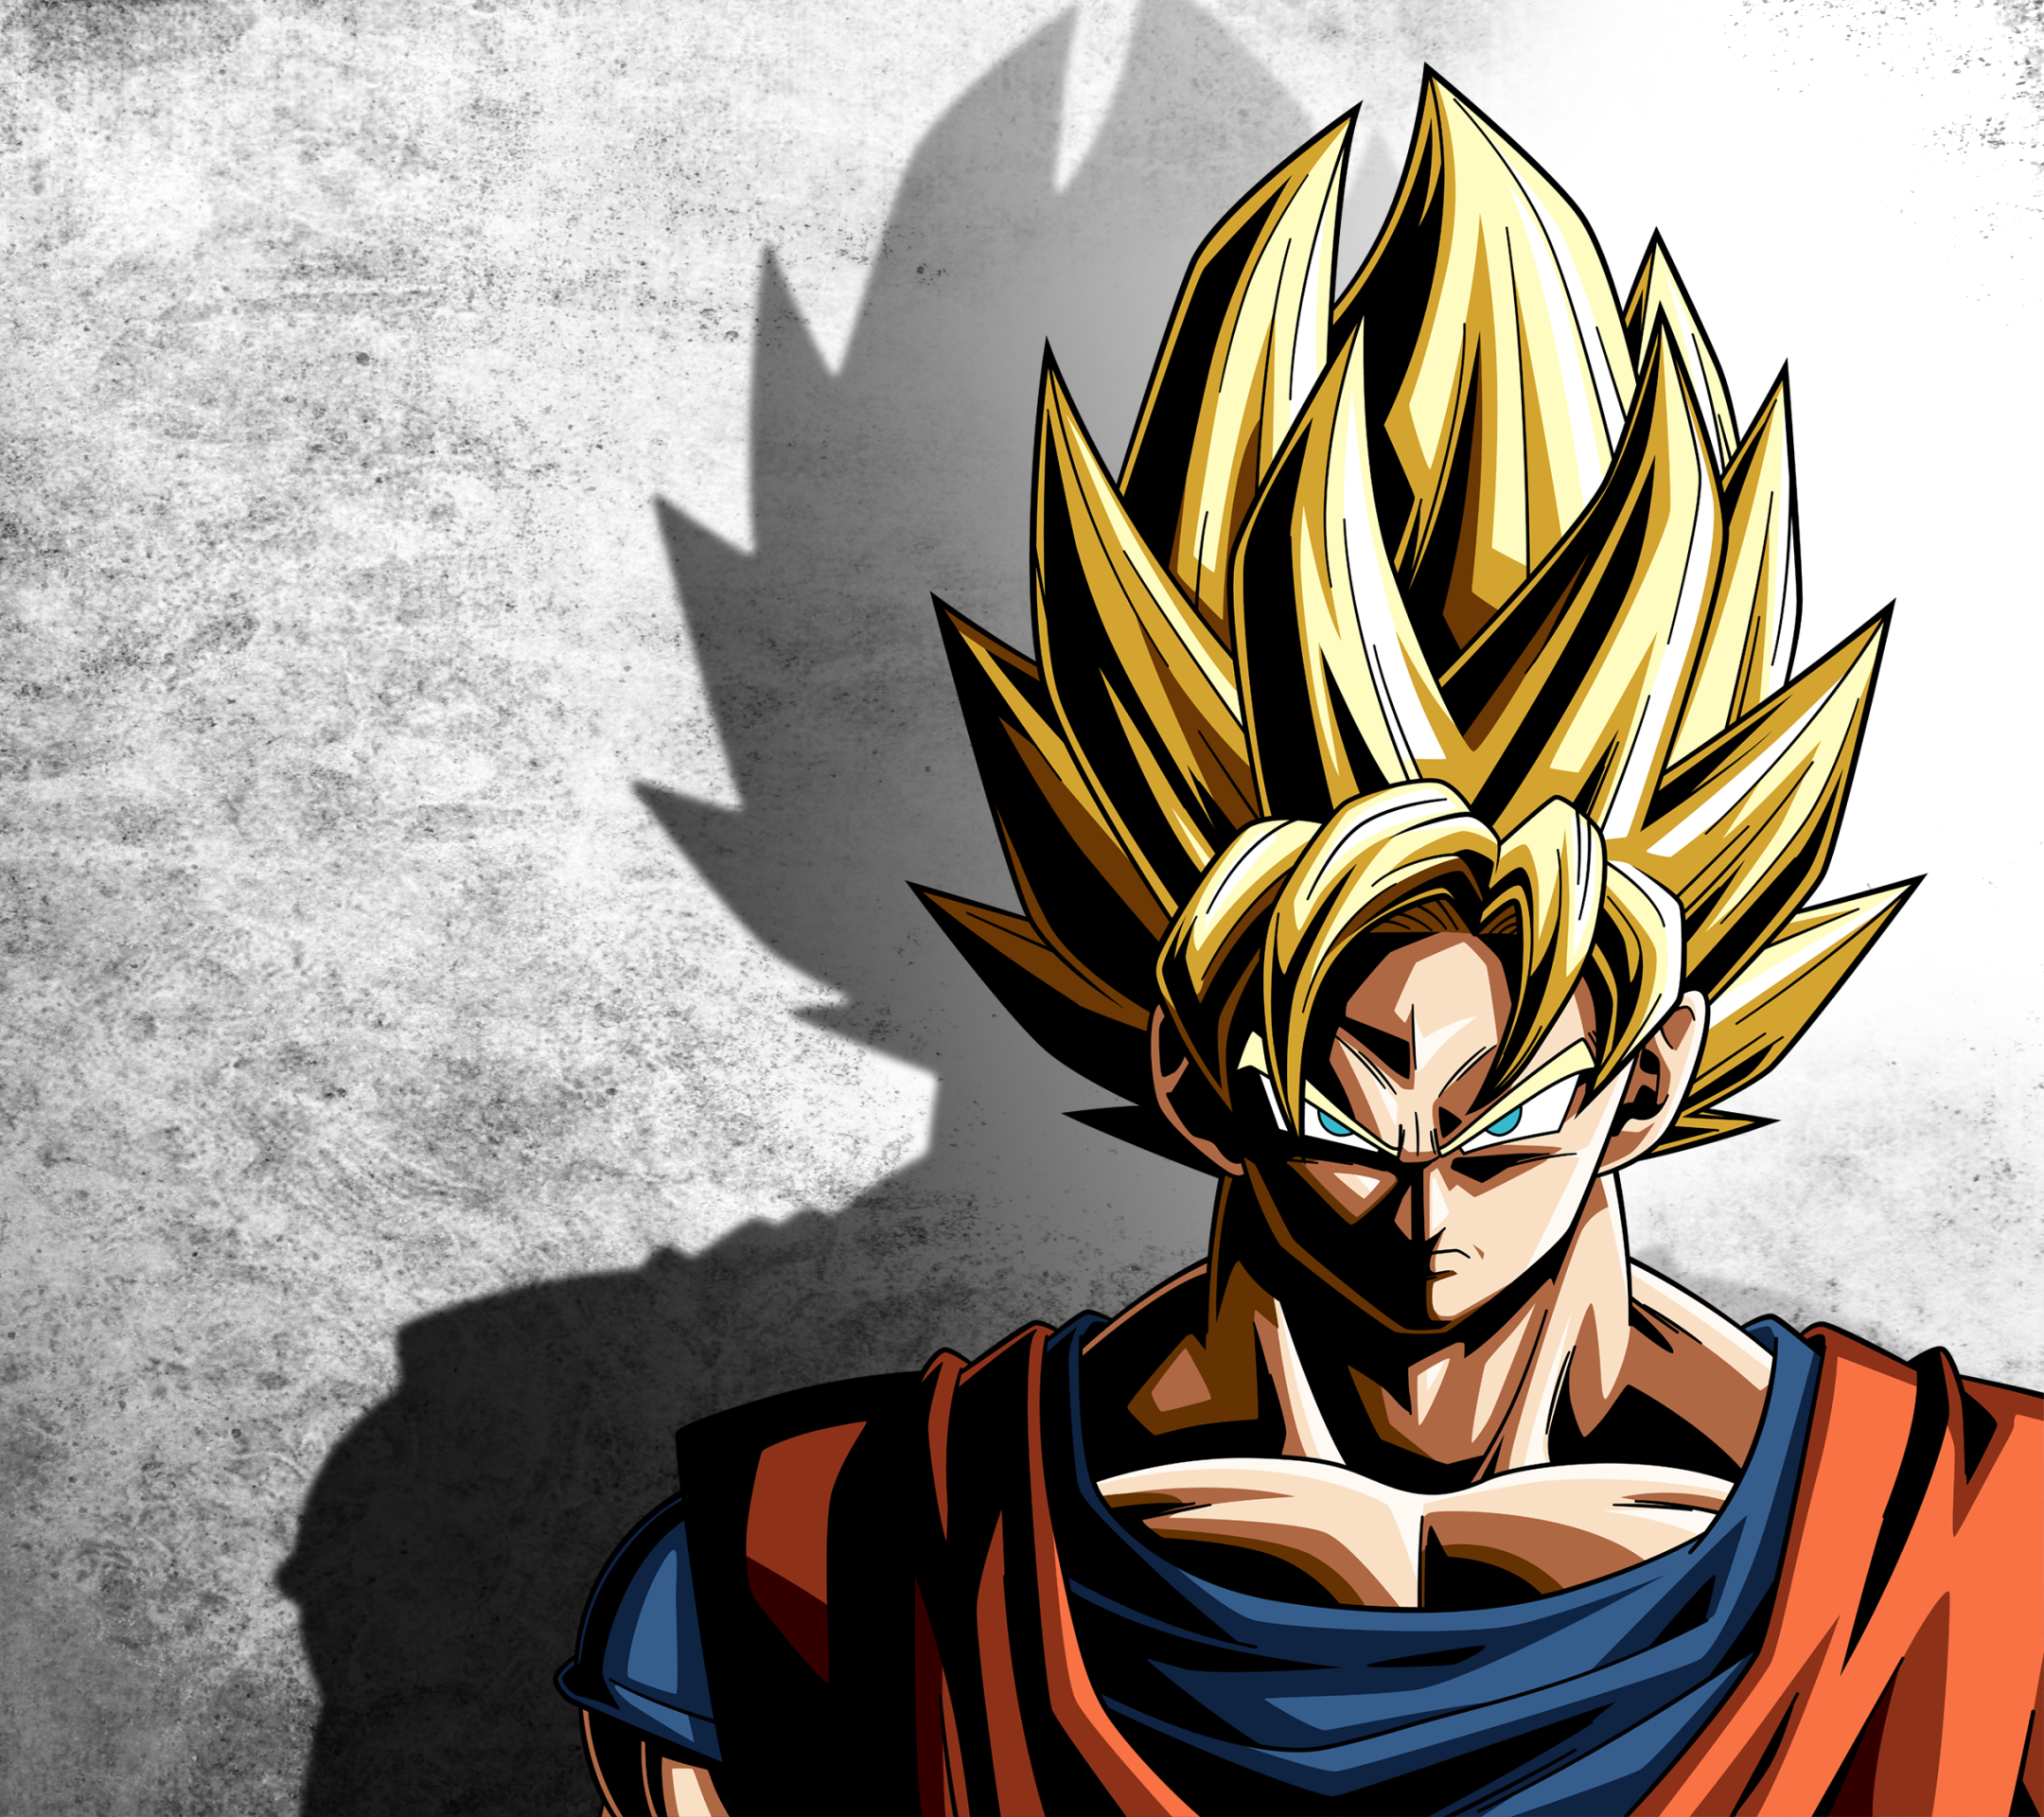 Dragon Ball Z Wallpapers 30 Images Dodowallpaper